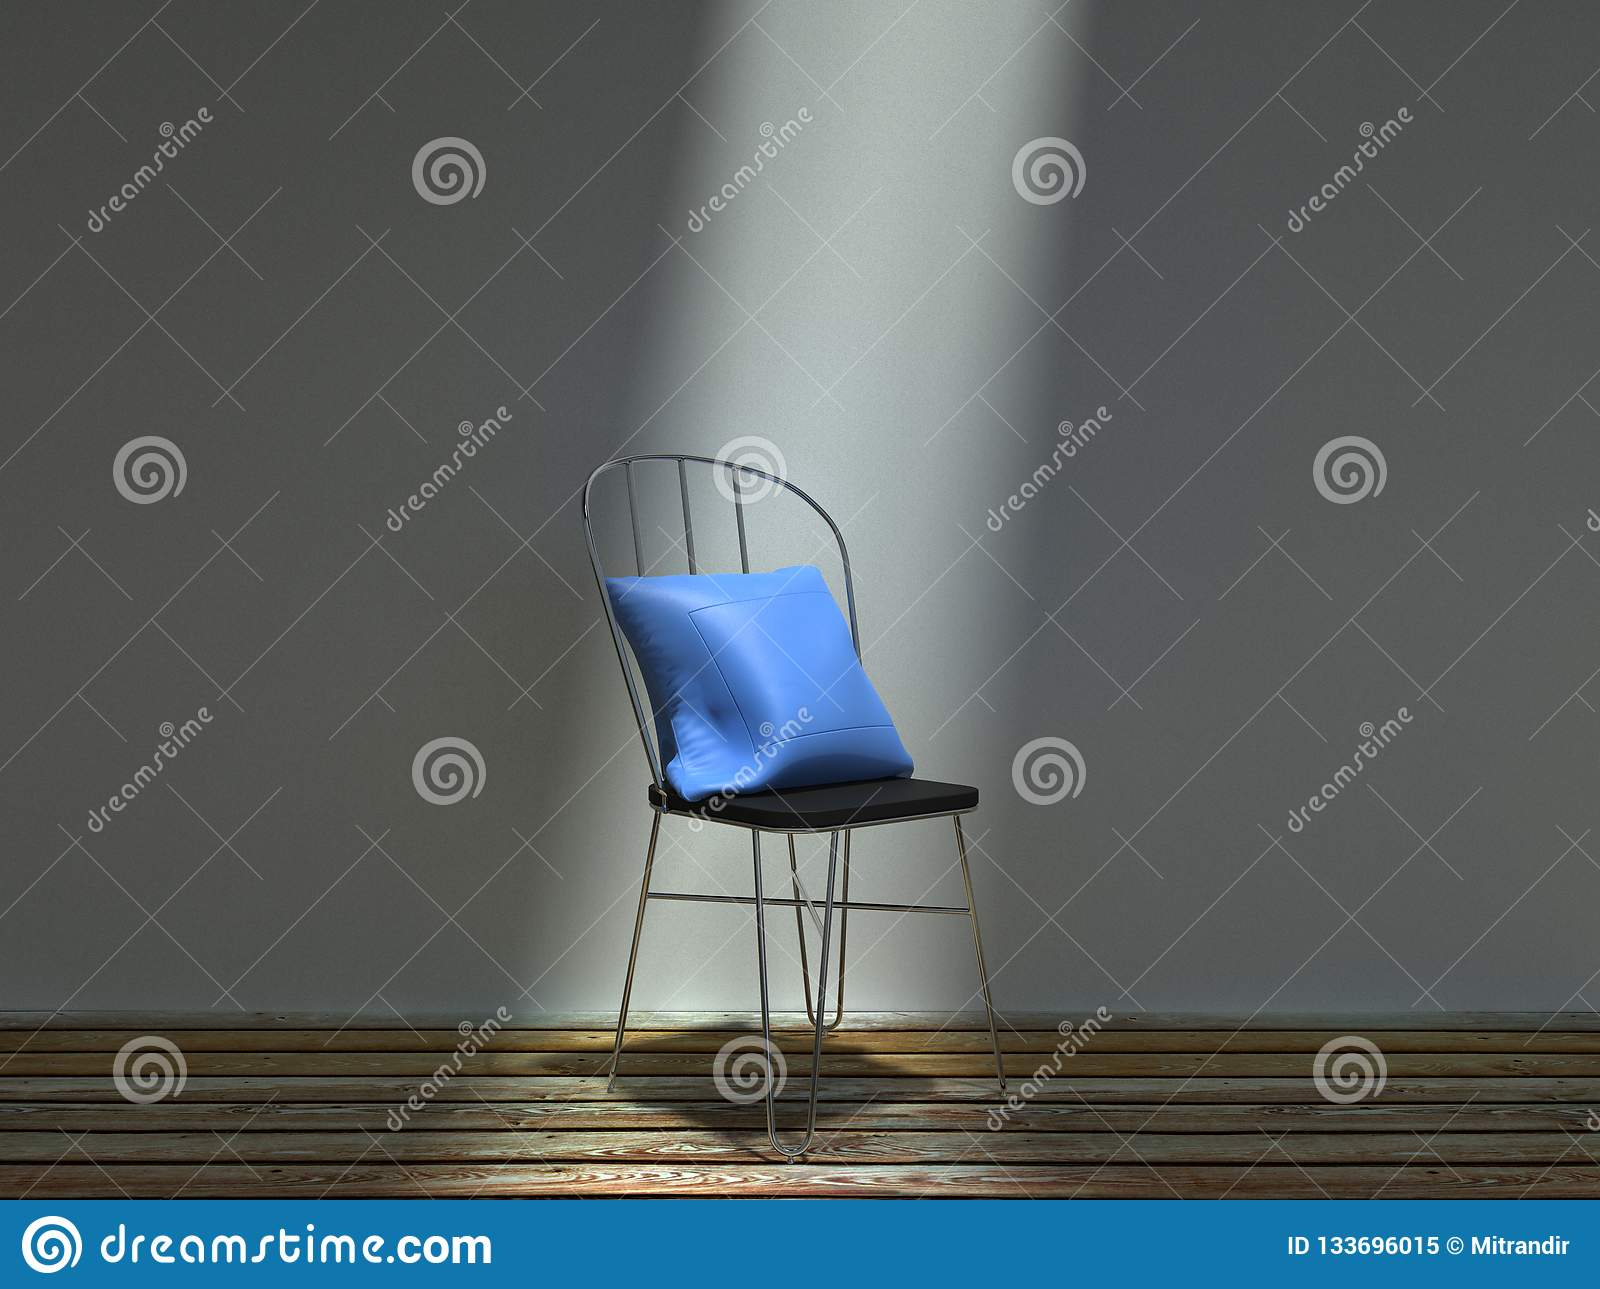 Common metal chair with blue cushion